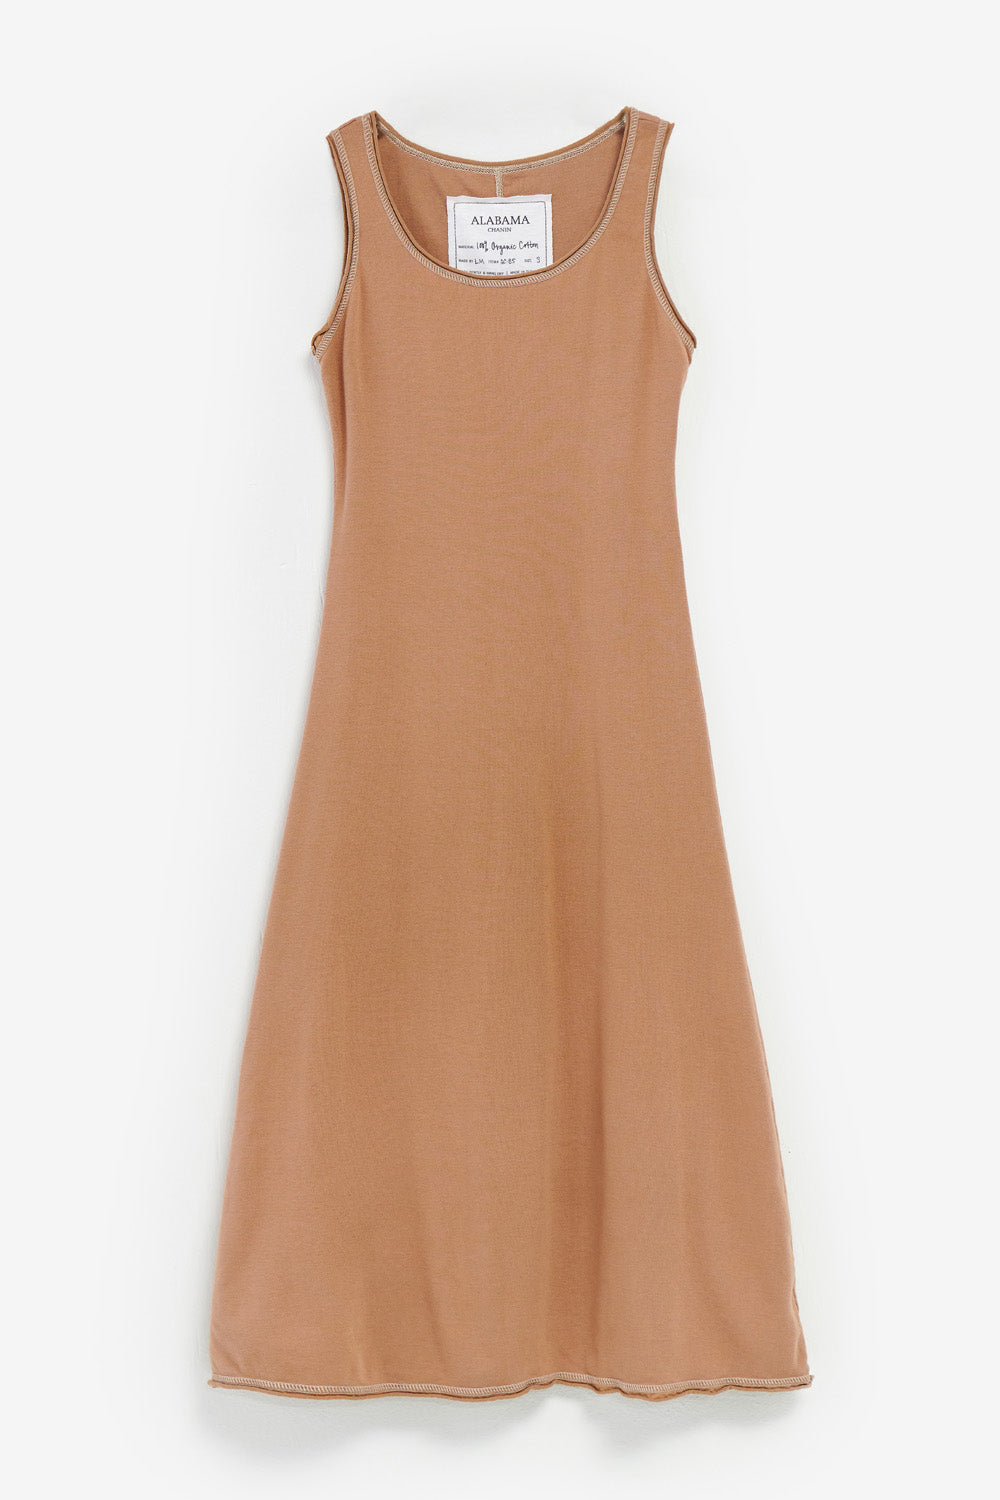 Alabama Chanin The Slip Dress Women's Slip Dress with Rounded Neck in Camel